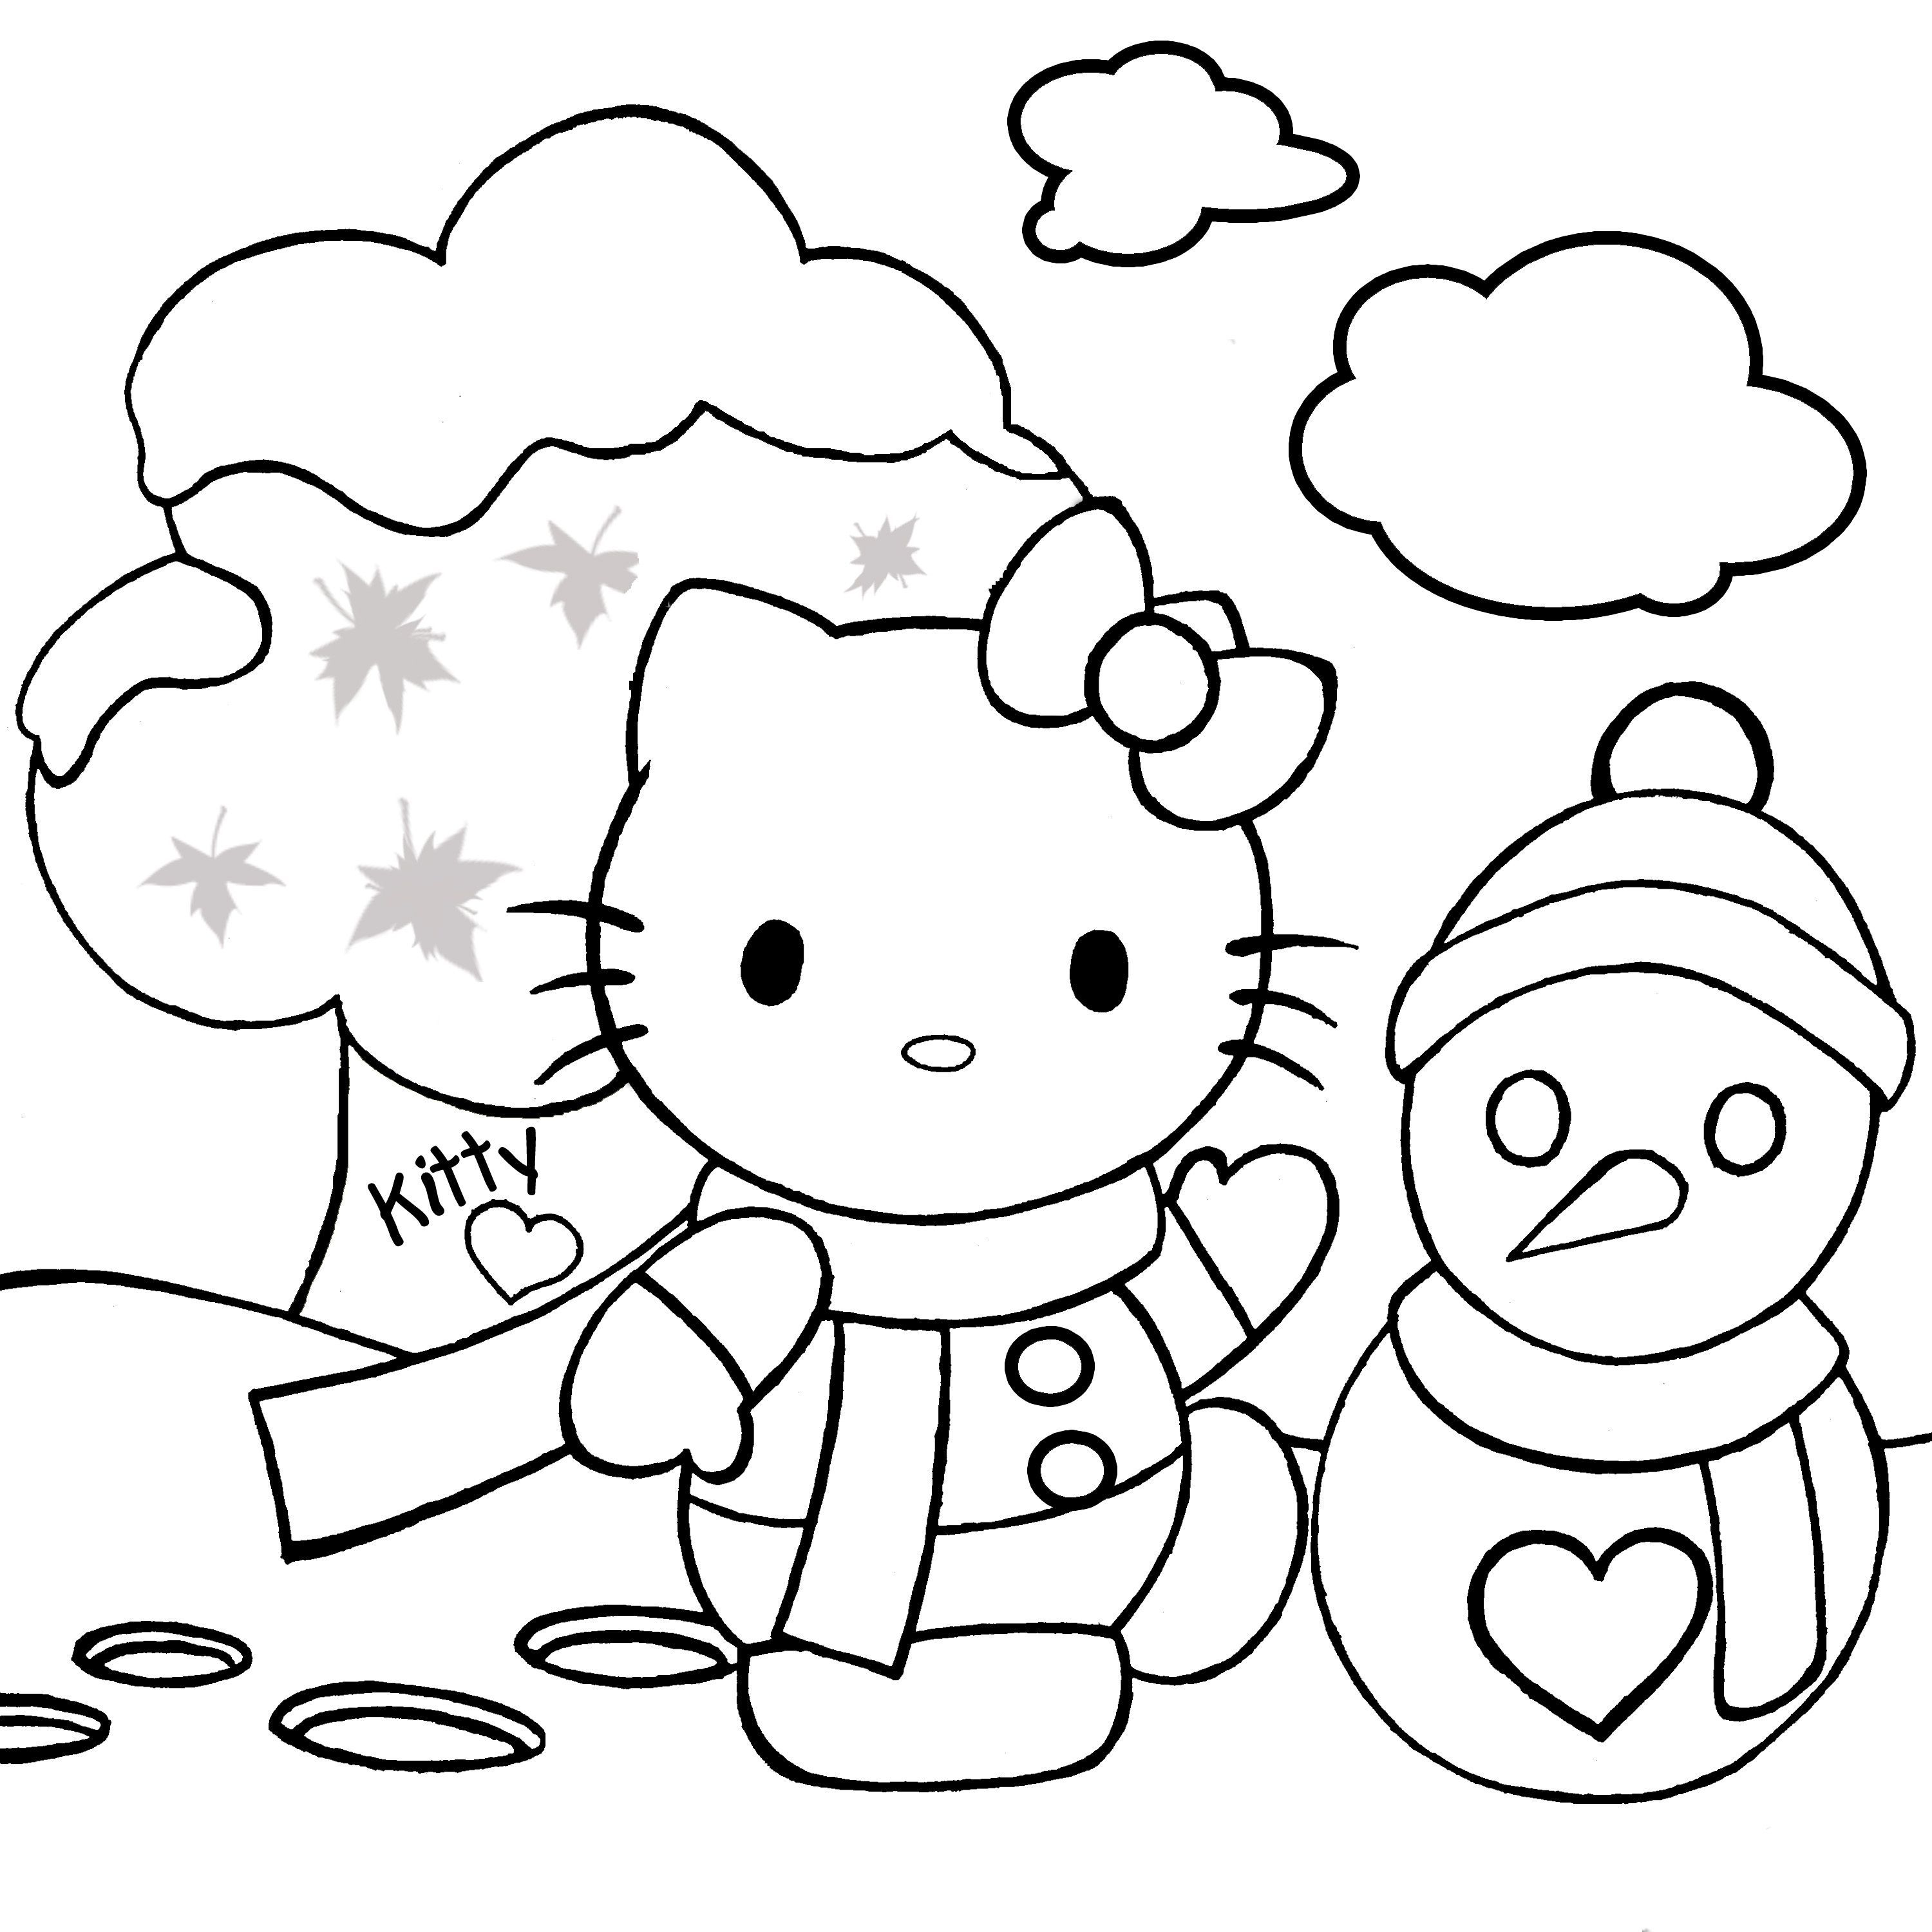 Print Out Merry Christmas Hello Kitty Coloring Pages